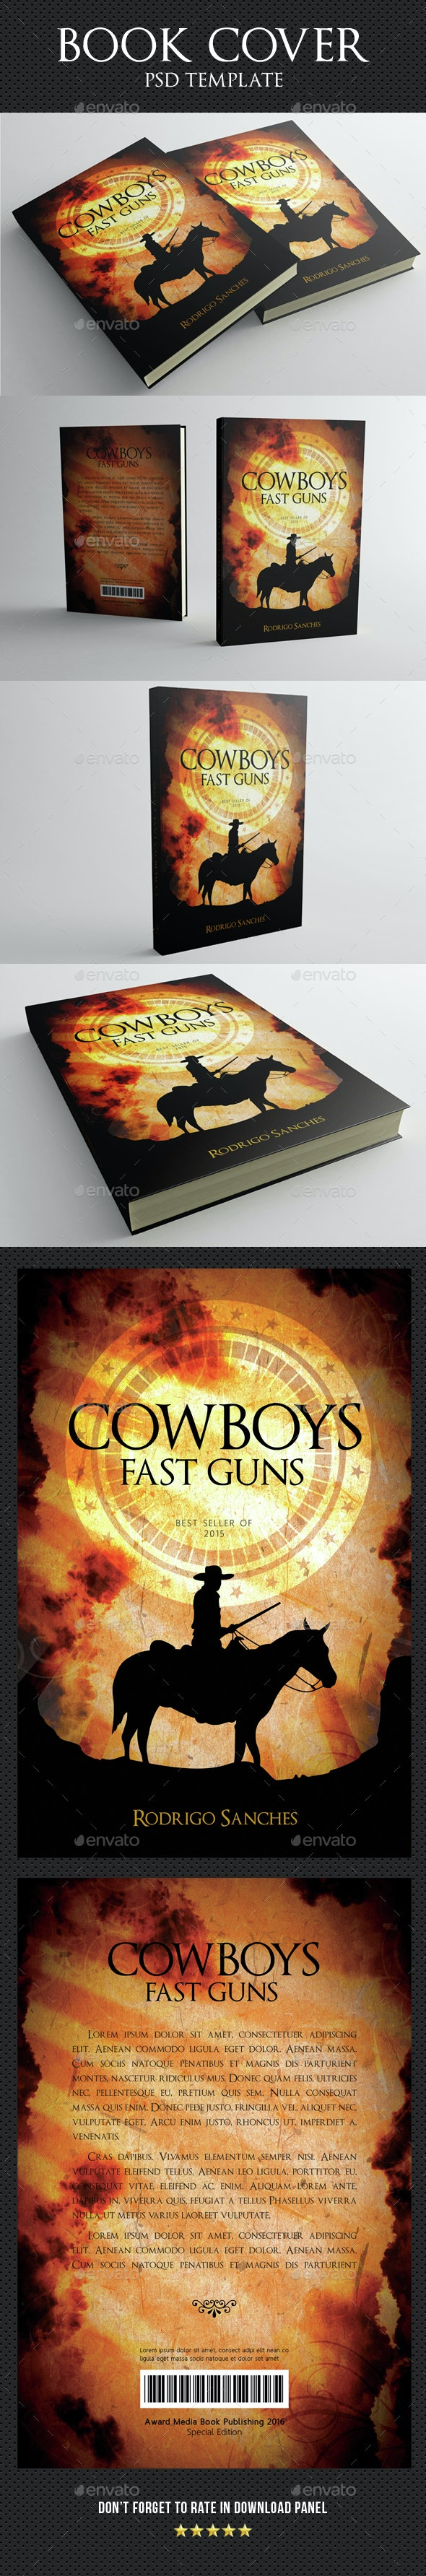 Cowboys Fast Guns Book Cover Template - Miscellaneous Print Templates